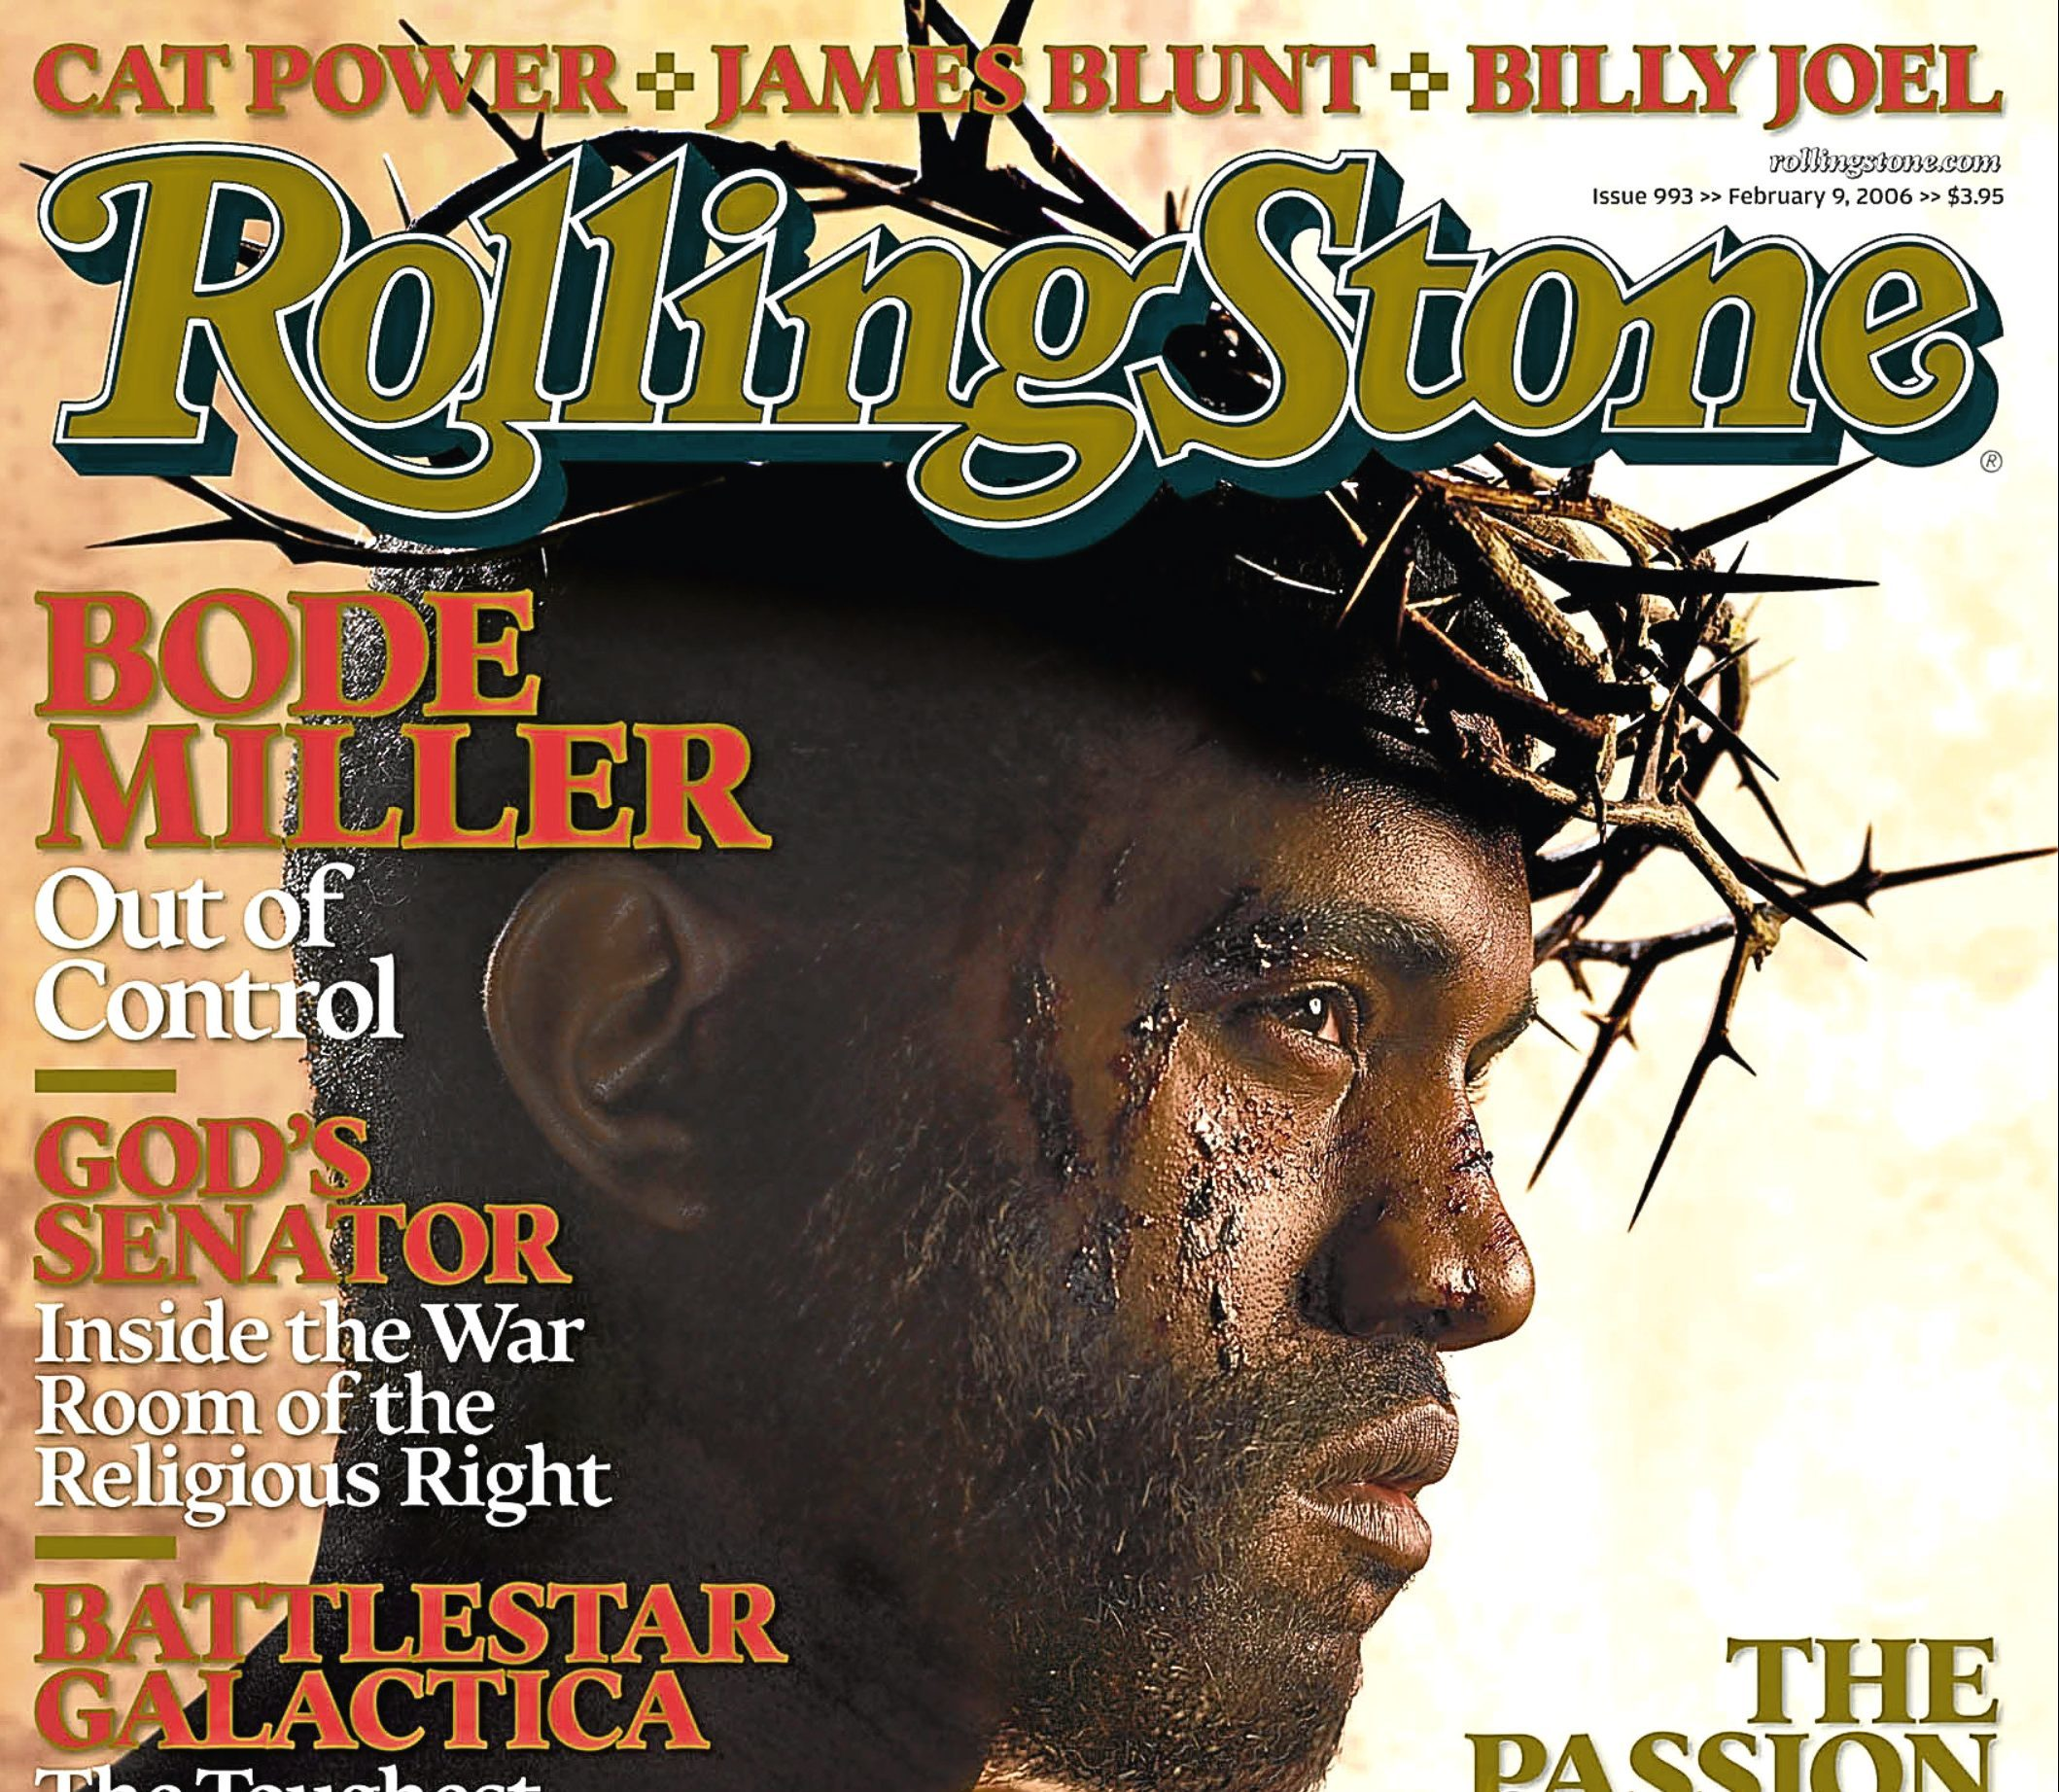 The photo from Rolling Stone magazine shows outspoken rapper Kanye West, with a crown of thorns atop his head, as Jesus Christ on the cover of the upcoming issue of Rolling Stone.(AP Photo/Rolling Stone)